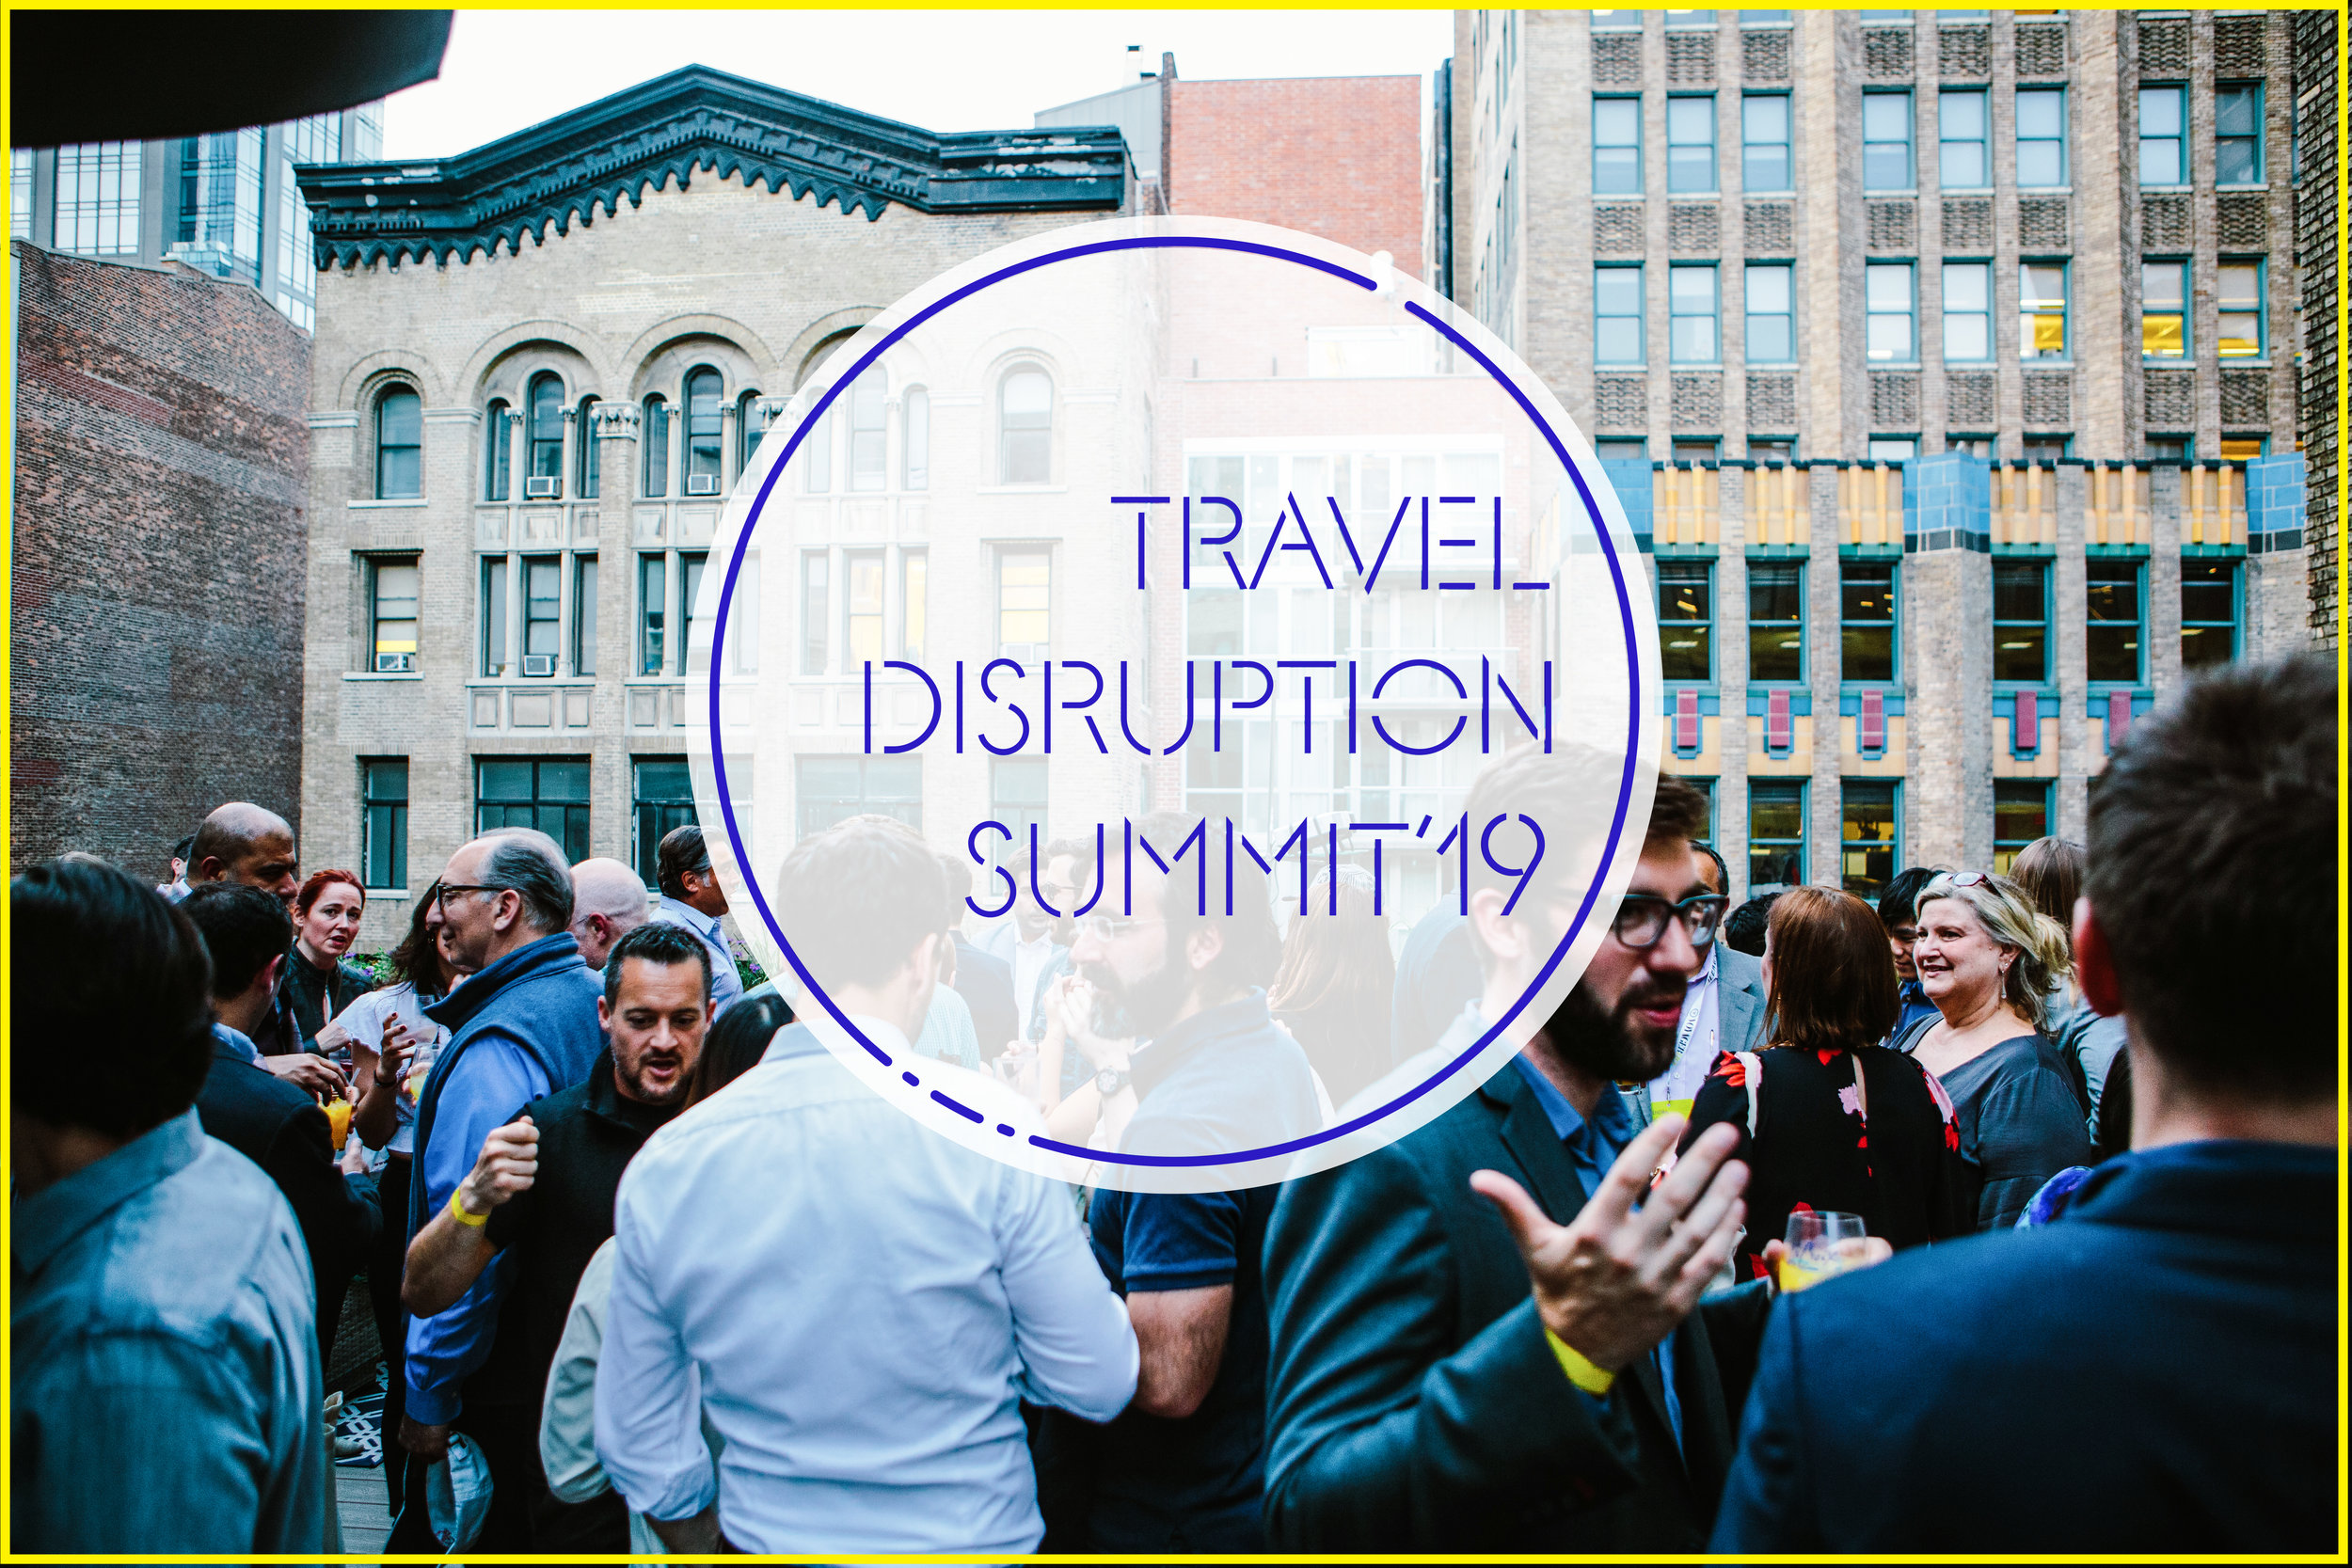 Copy of Travel_Disruption_Summit-244 (1).jpg